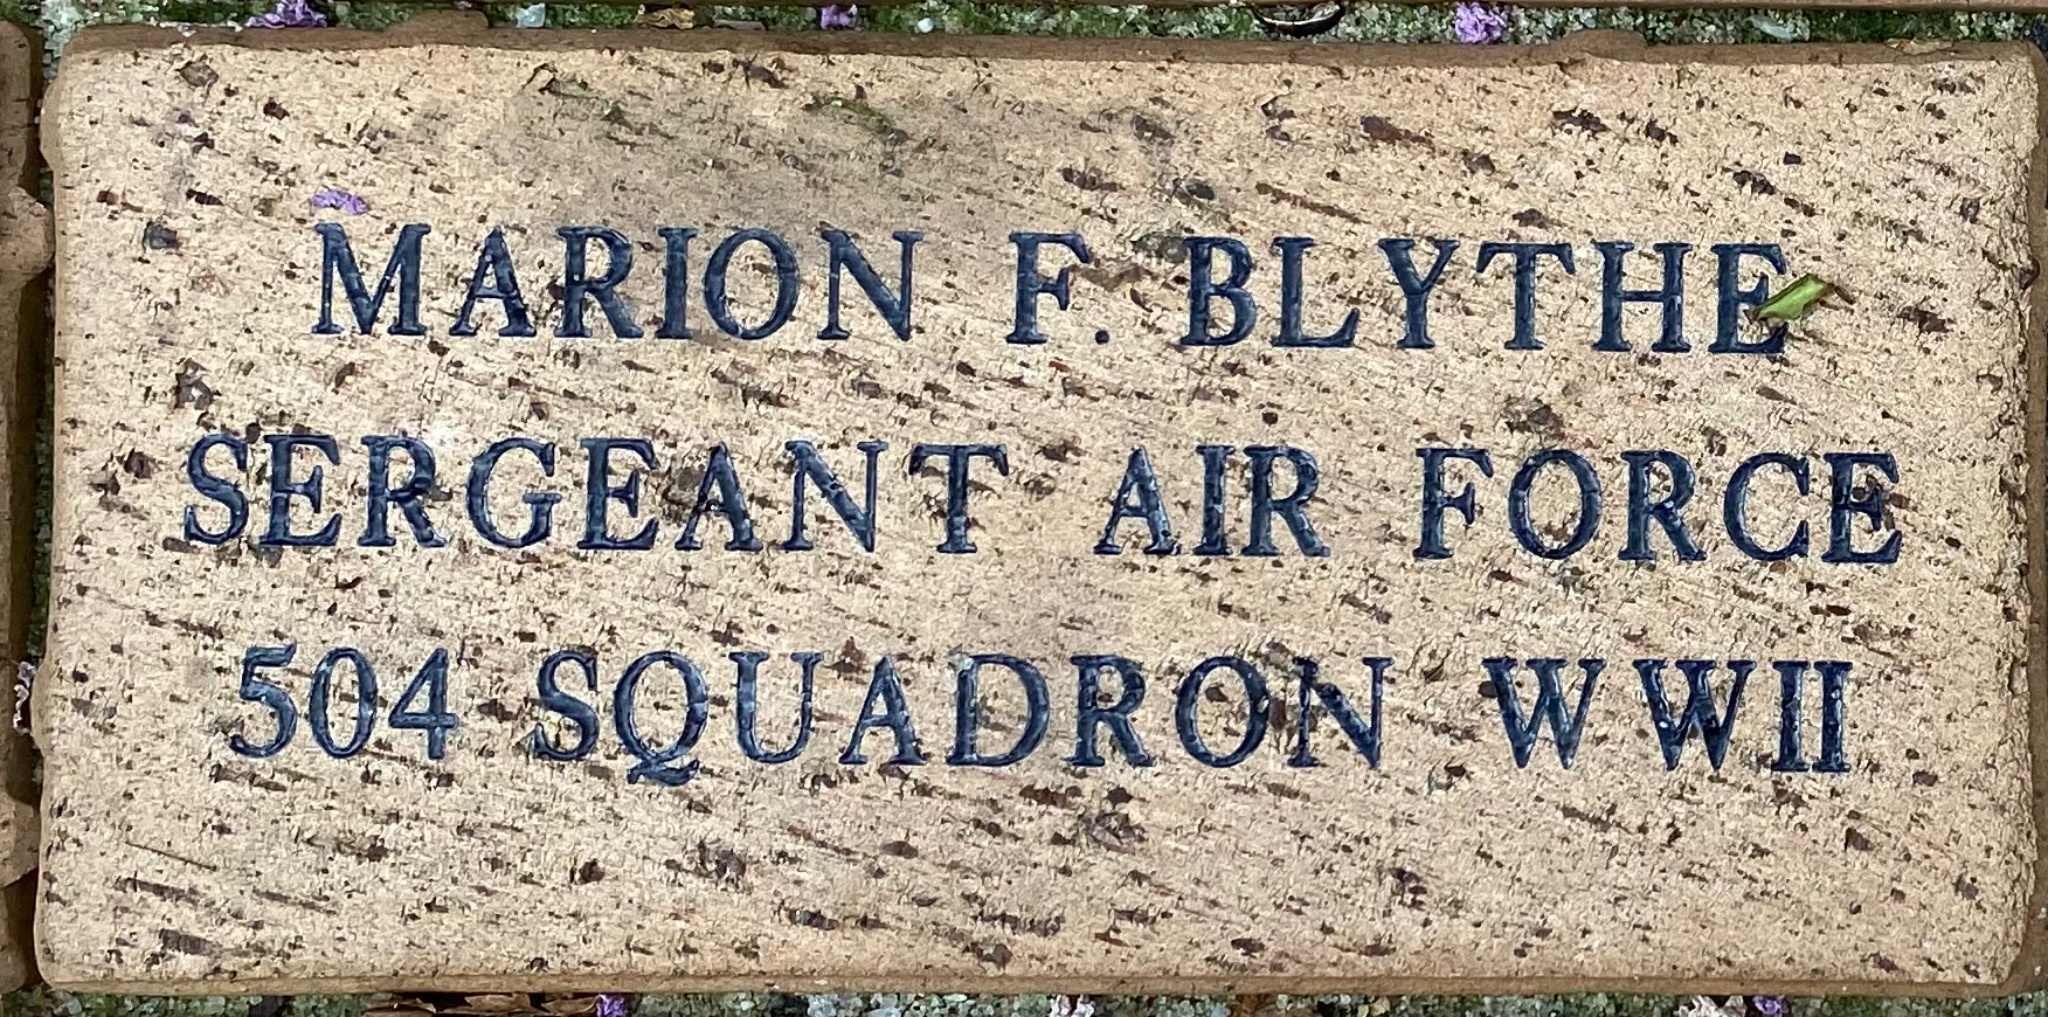 MARION F. BLYTHE SERGEANT AIR FORCE 504-SQUADRON WWII